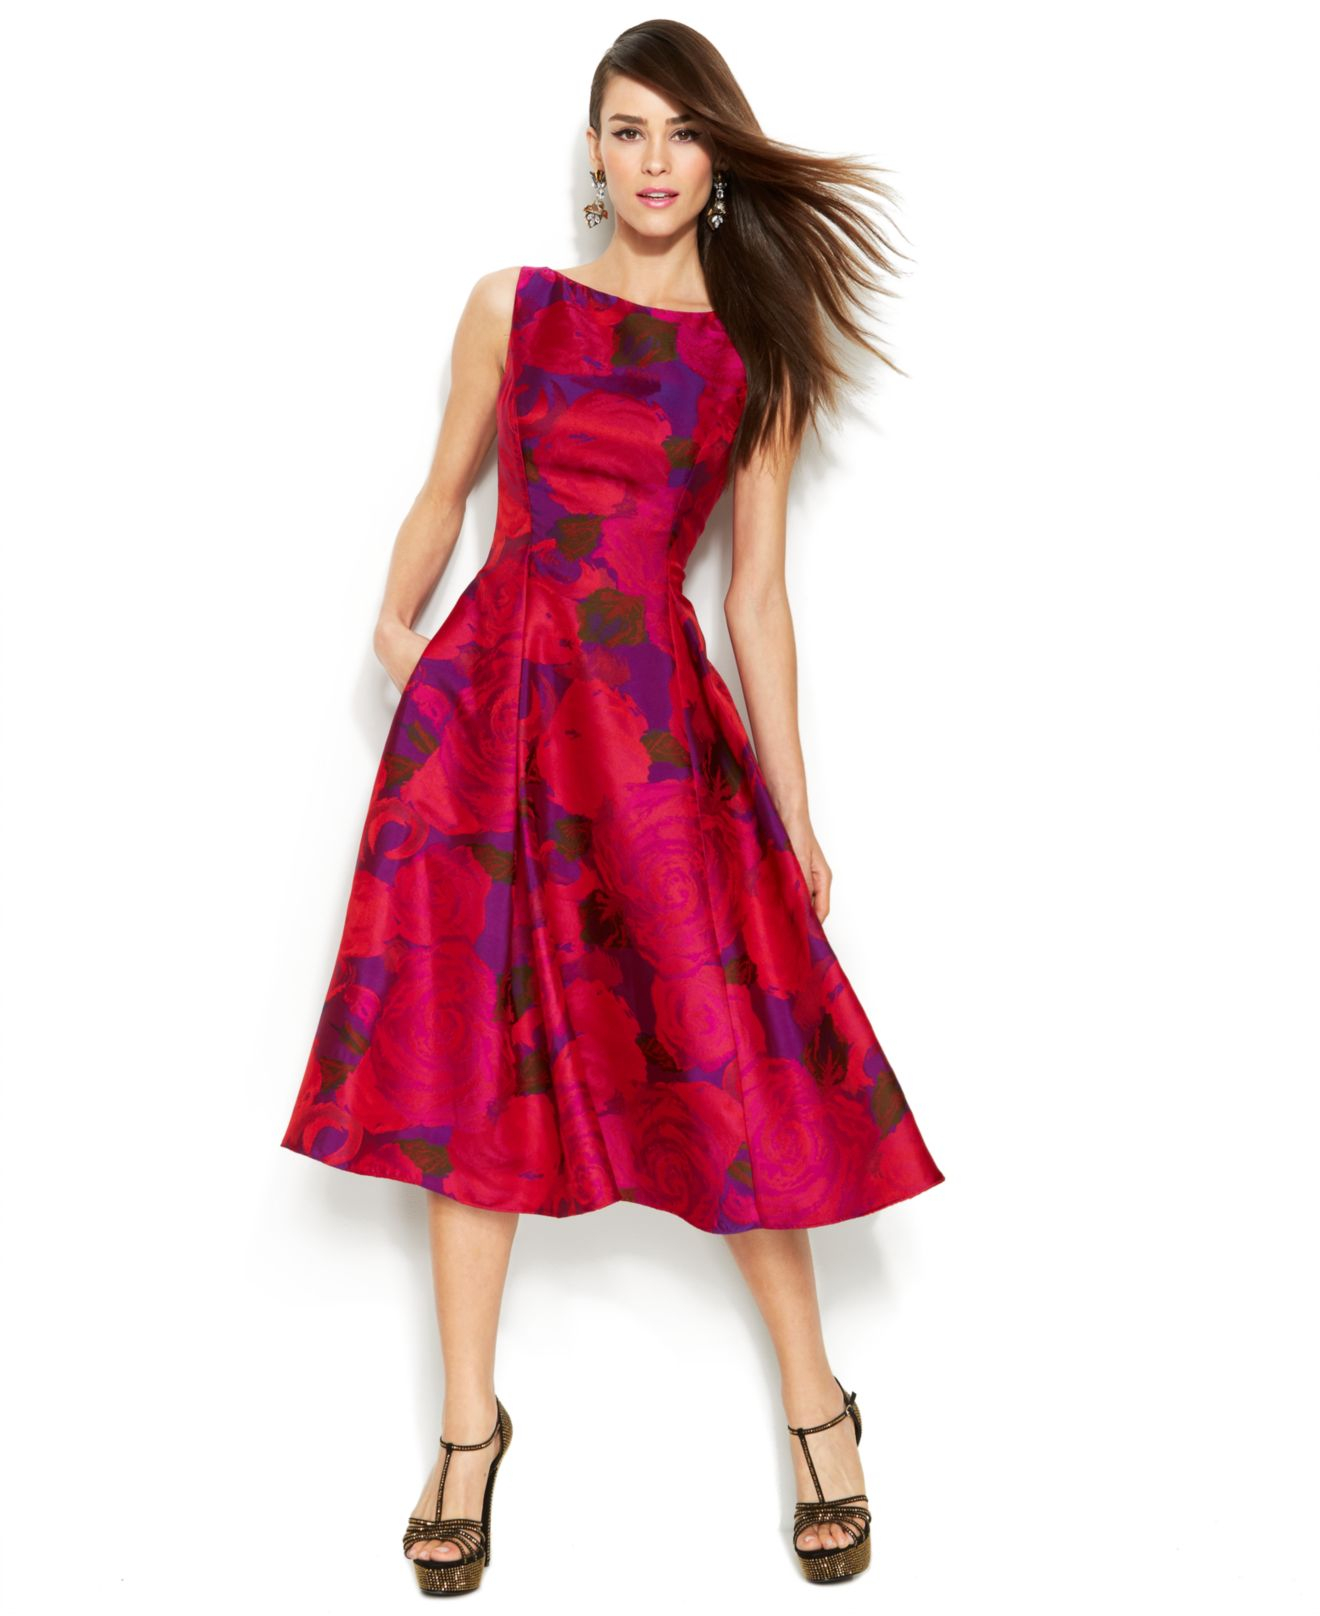 7c8218d435 Adrianna Papell Sleeveless Rose-Print Midi Dress in Red - Lyst